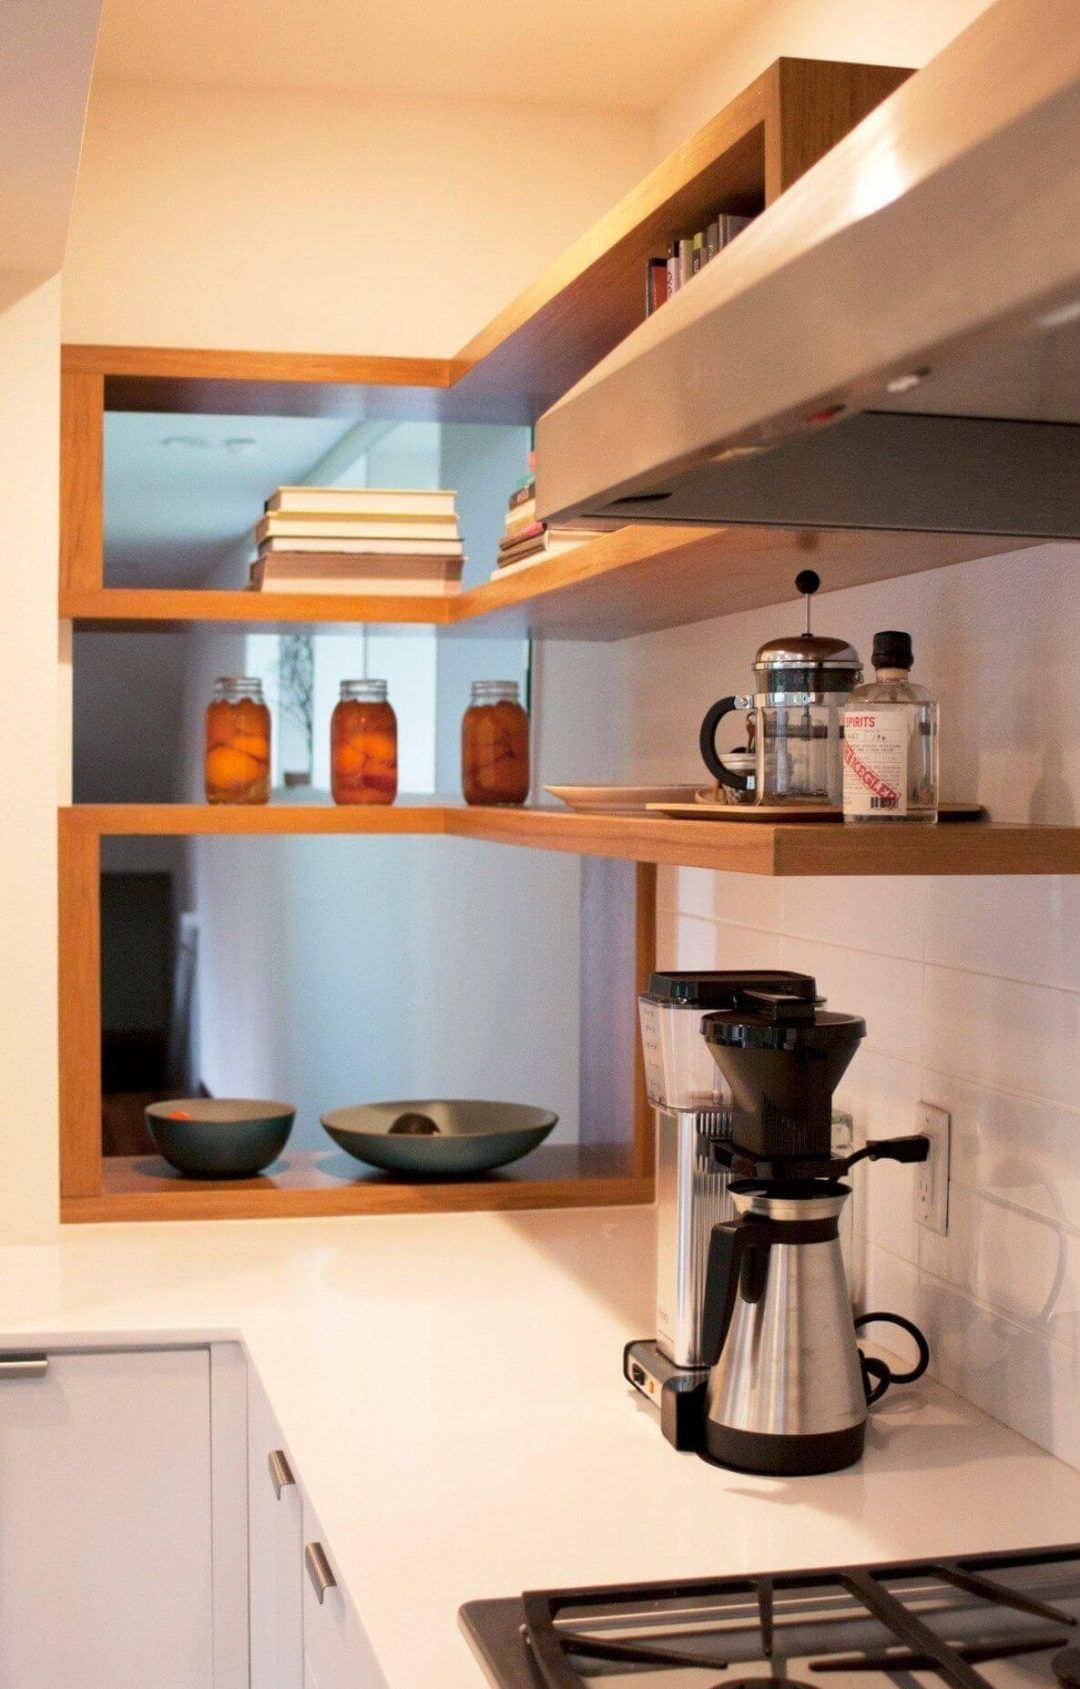 25 Mid Century Modern Kitchen Ideas To Beautify Your Cooking Area - Bcba90E2C16516A512B7A2D02C4D1A84